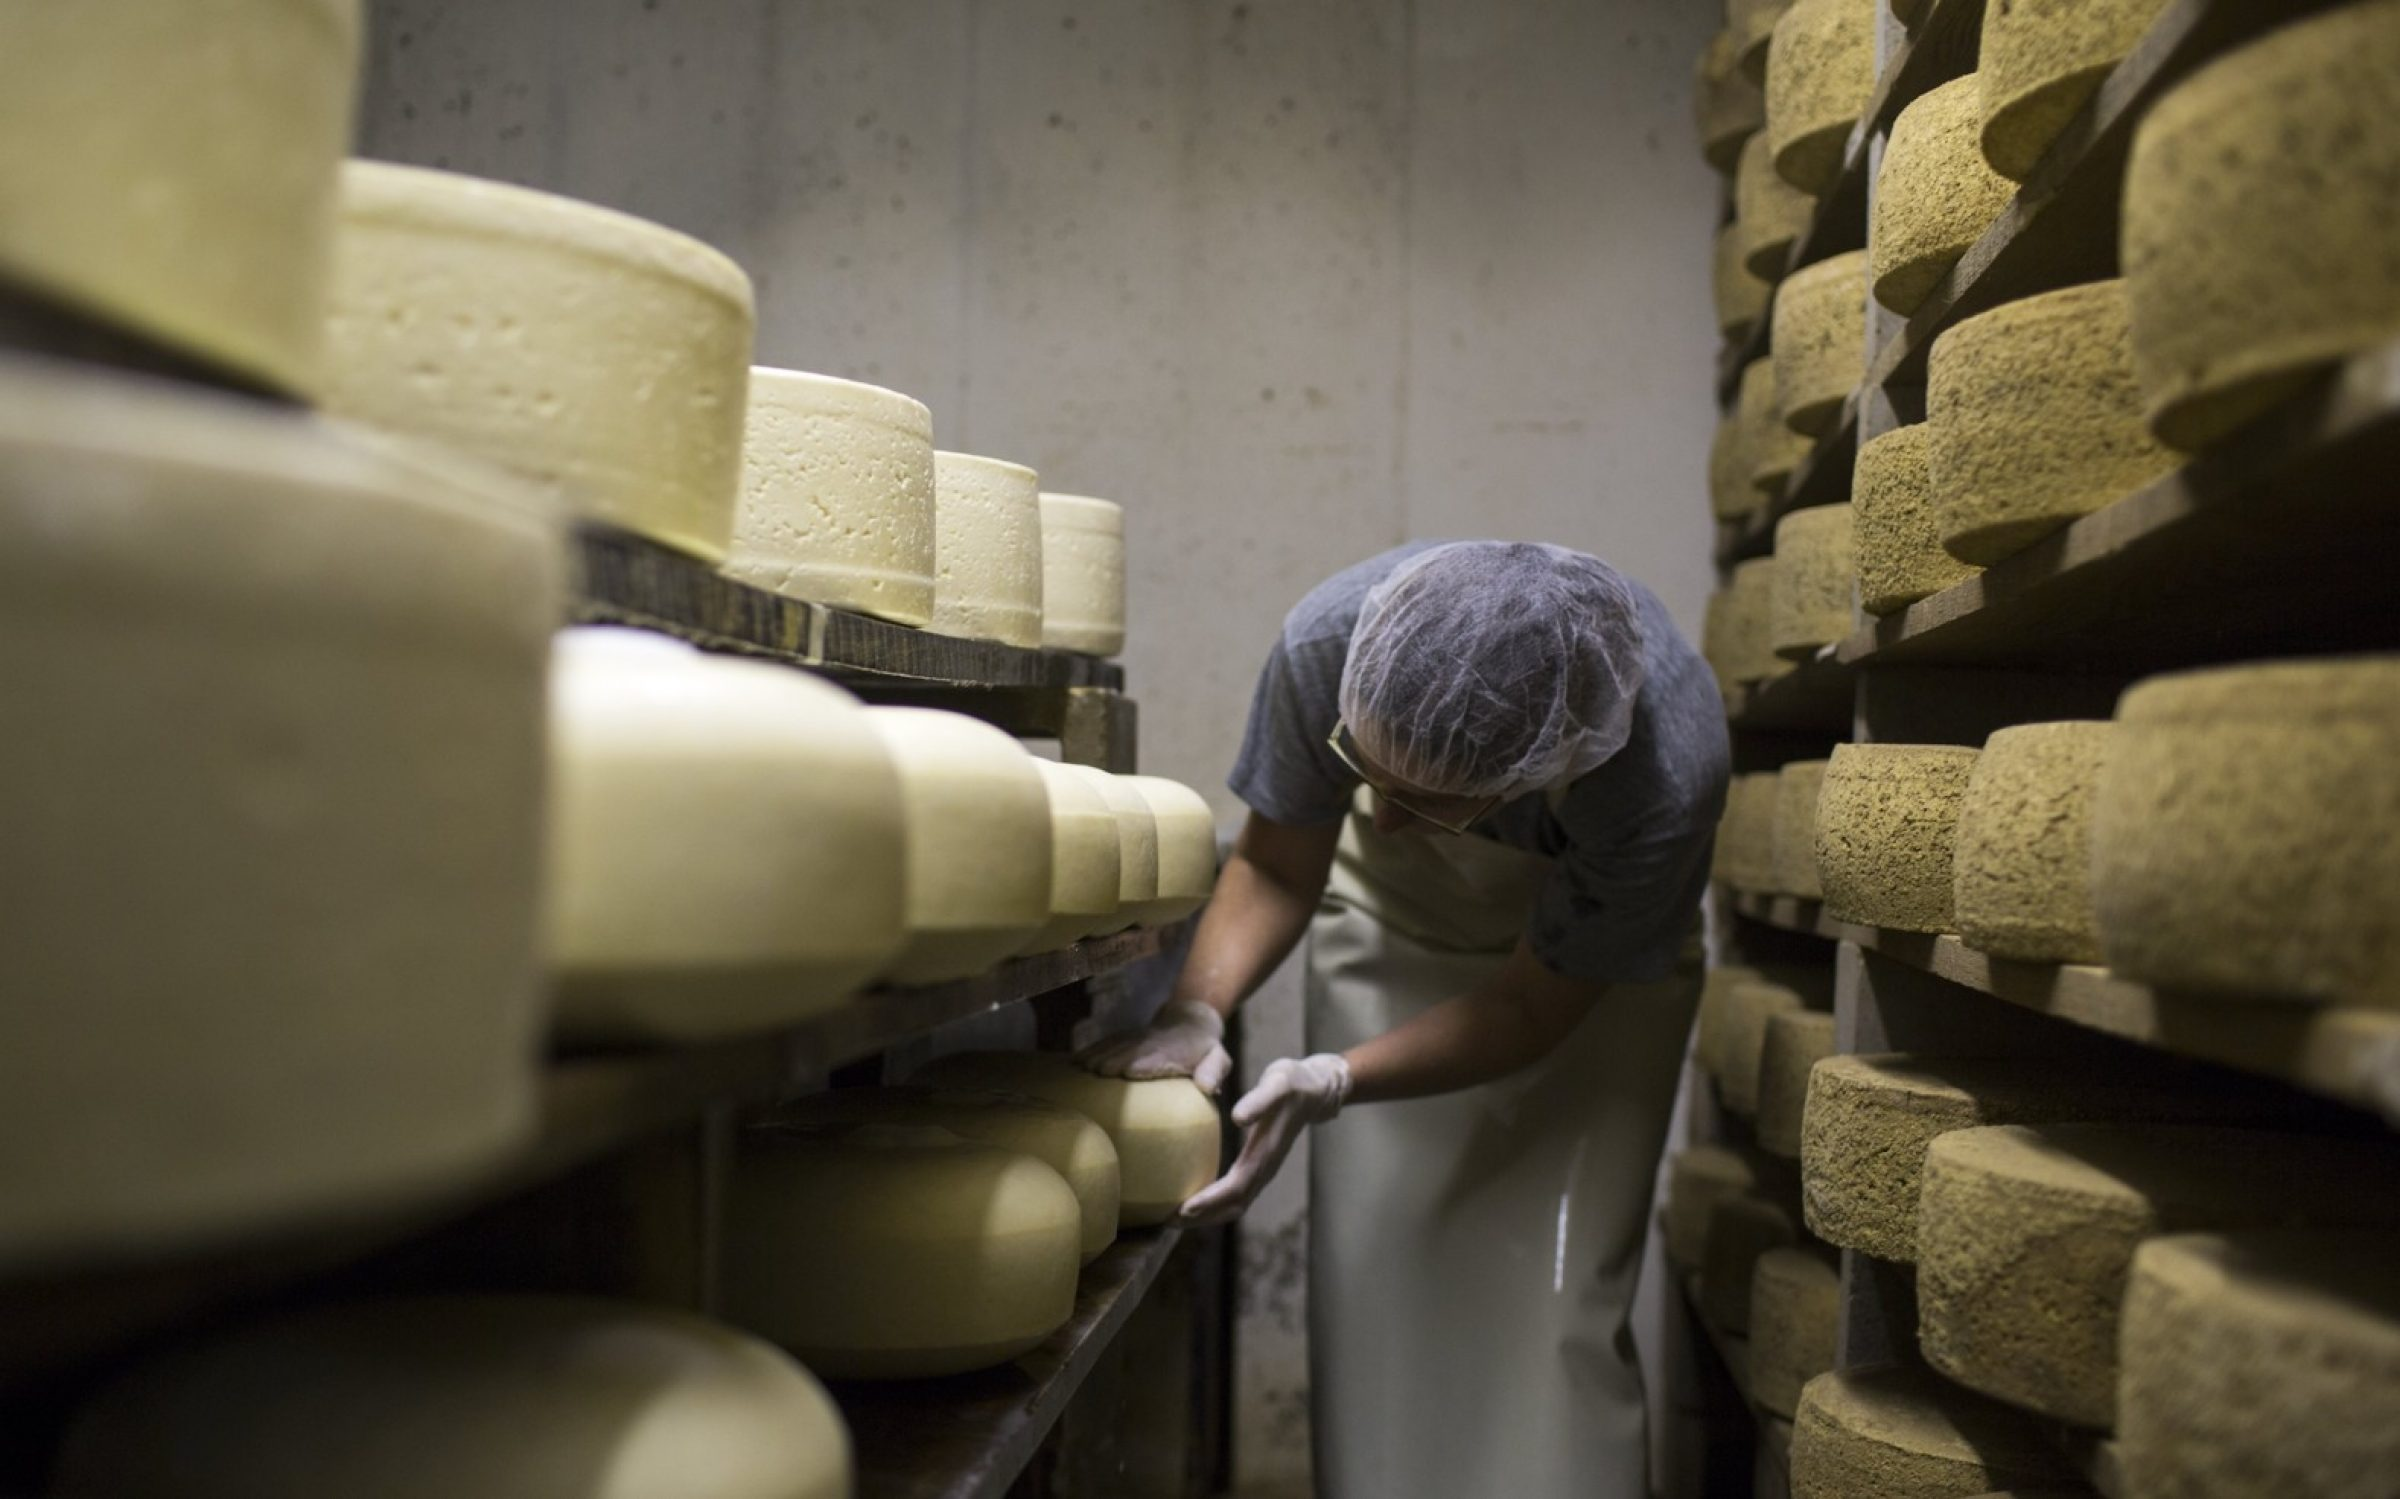 Cheese maker Becky Smith salts the rind of newly made wheels of cheese at Cato Corner Farm, Connecticut. Credit: Robert Nickelsberg / Getty Images.